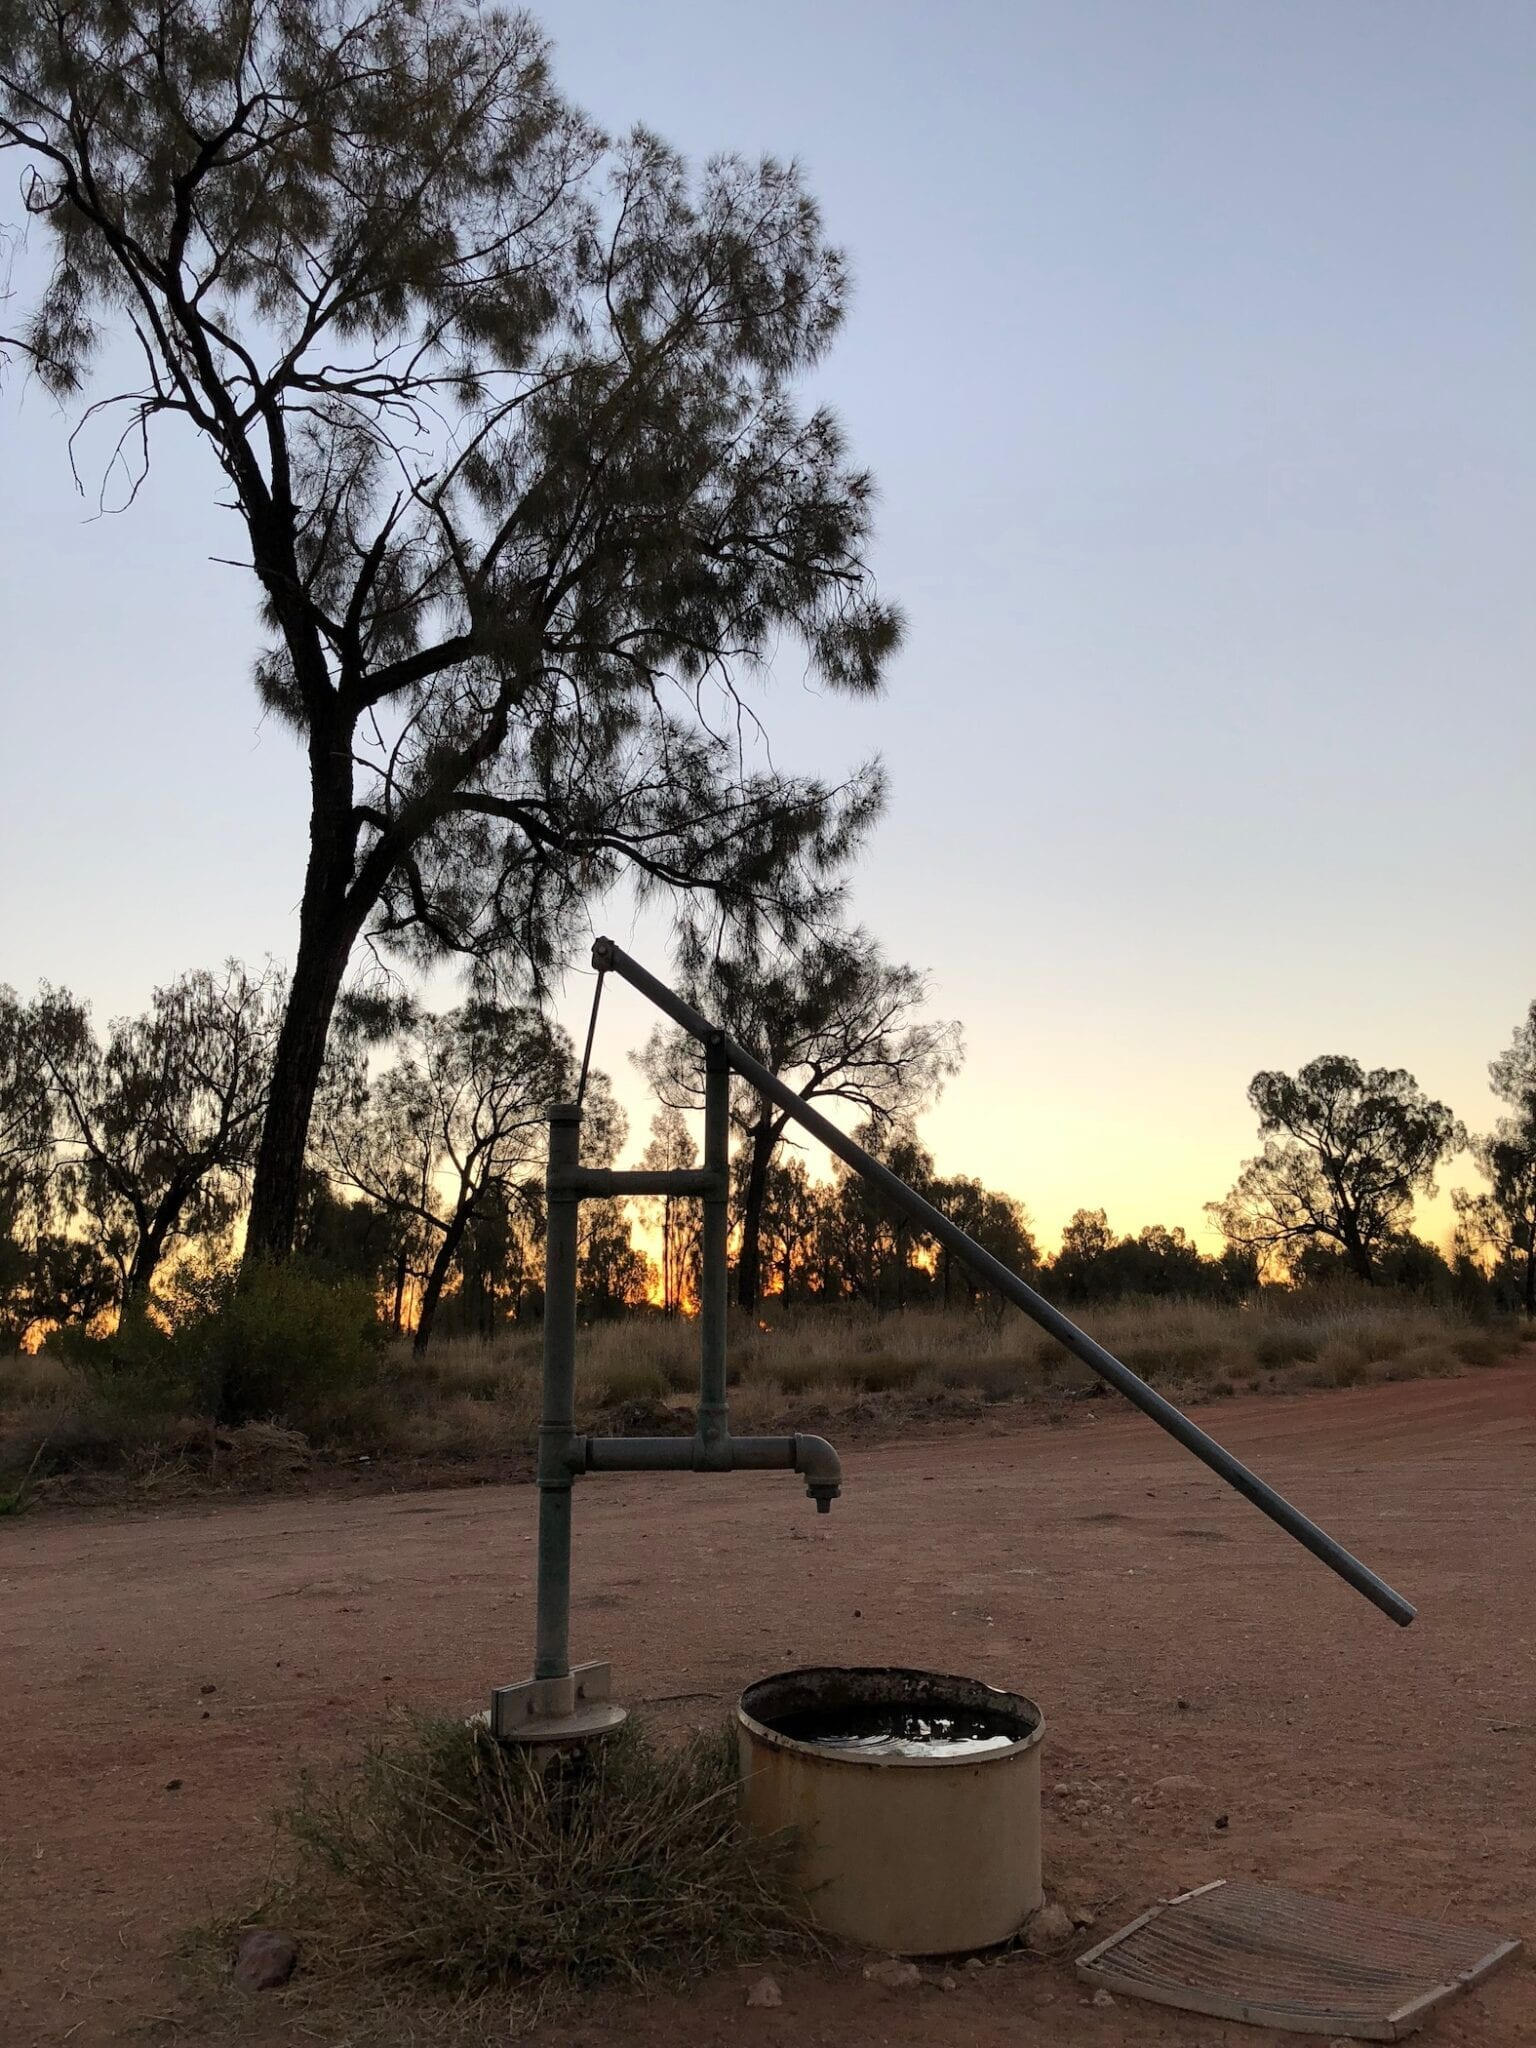 The operating well at Jupiter Well, Gary Junction Road.